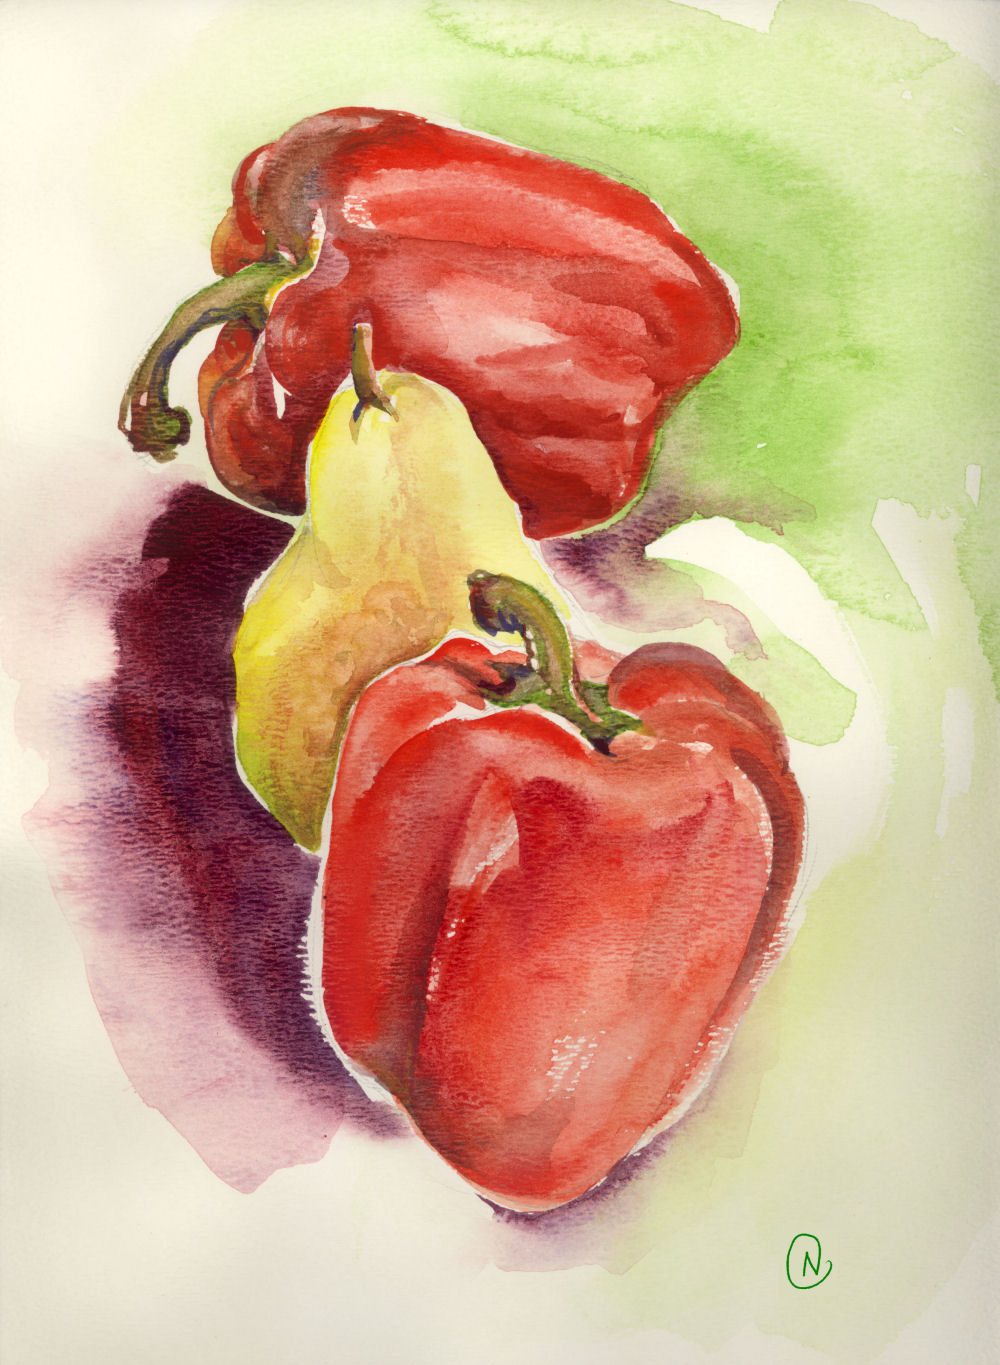 Red peppers and pear study 02, 14H x 11W inches watercolors on 120 lb premium